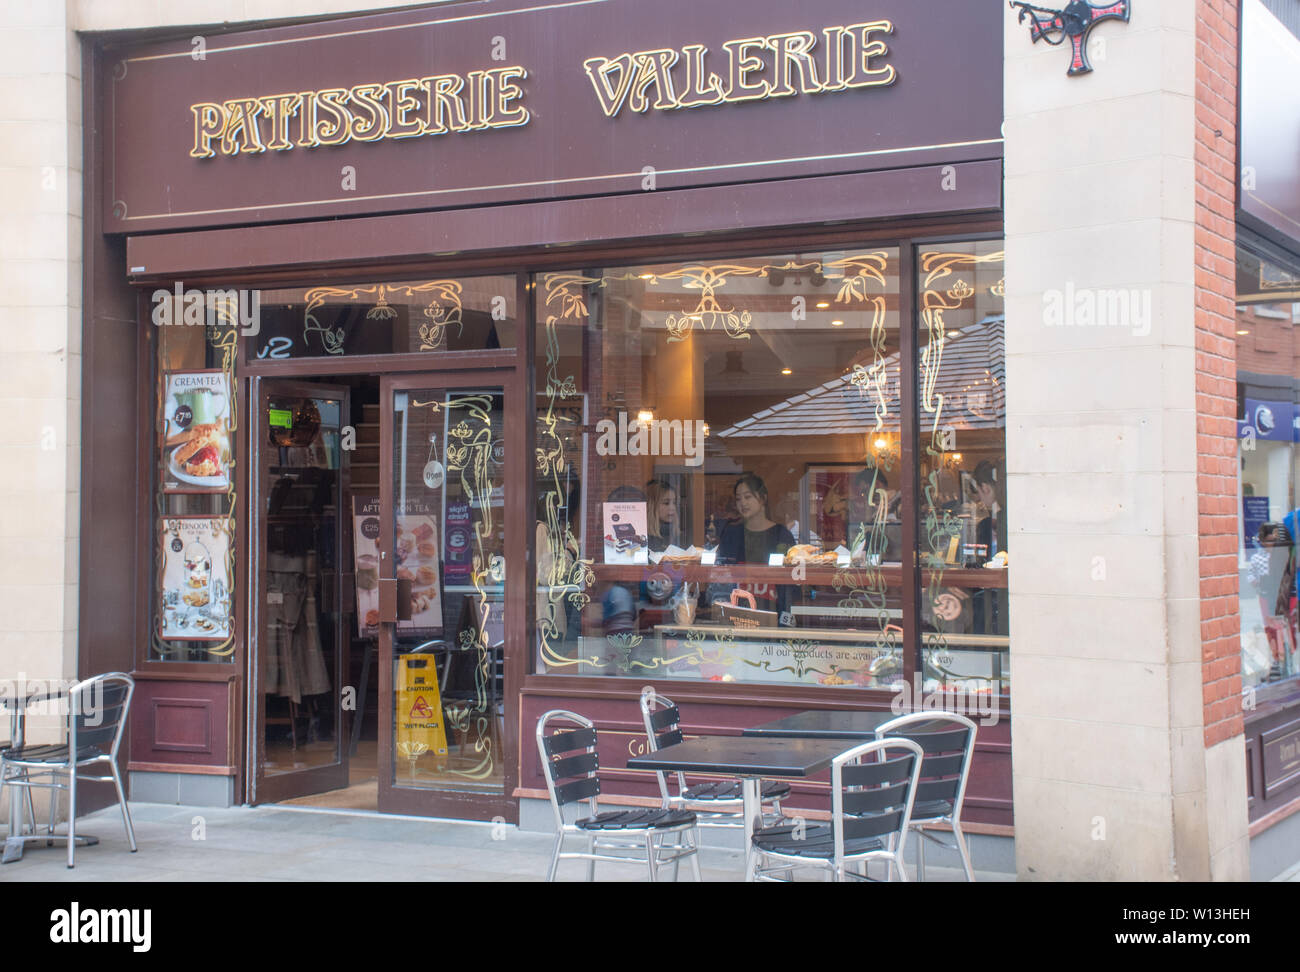 Durham   United Kingdom  - 31 May 2019:  Frontage of Patisserie Valarie Pastry Shop Stock Photo